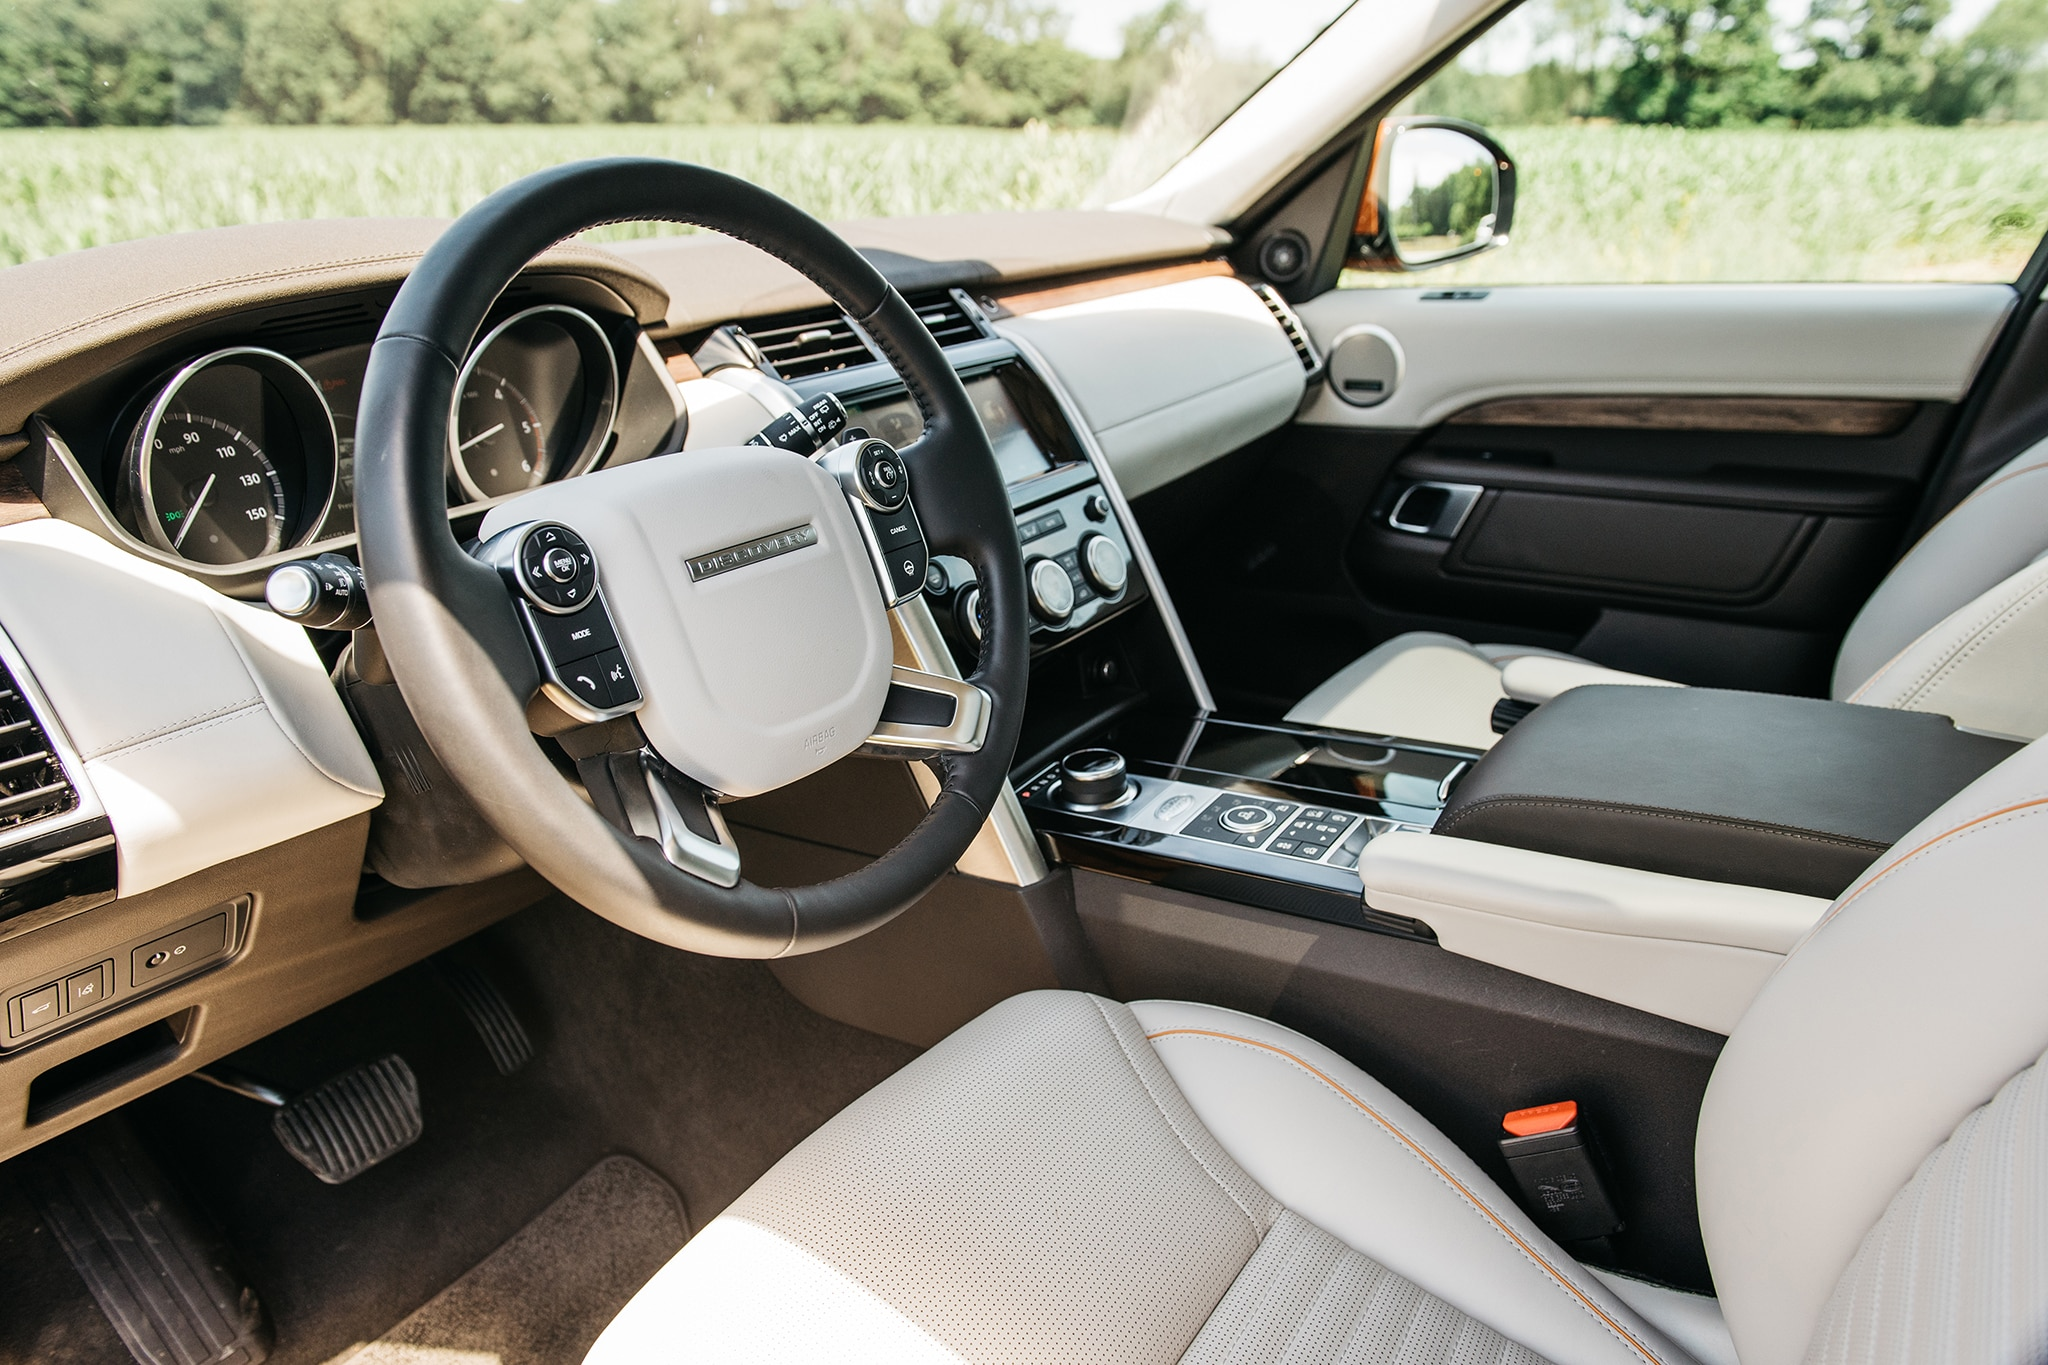 2017 Land Rover Discovery Td6 HSE Dashboard